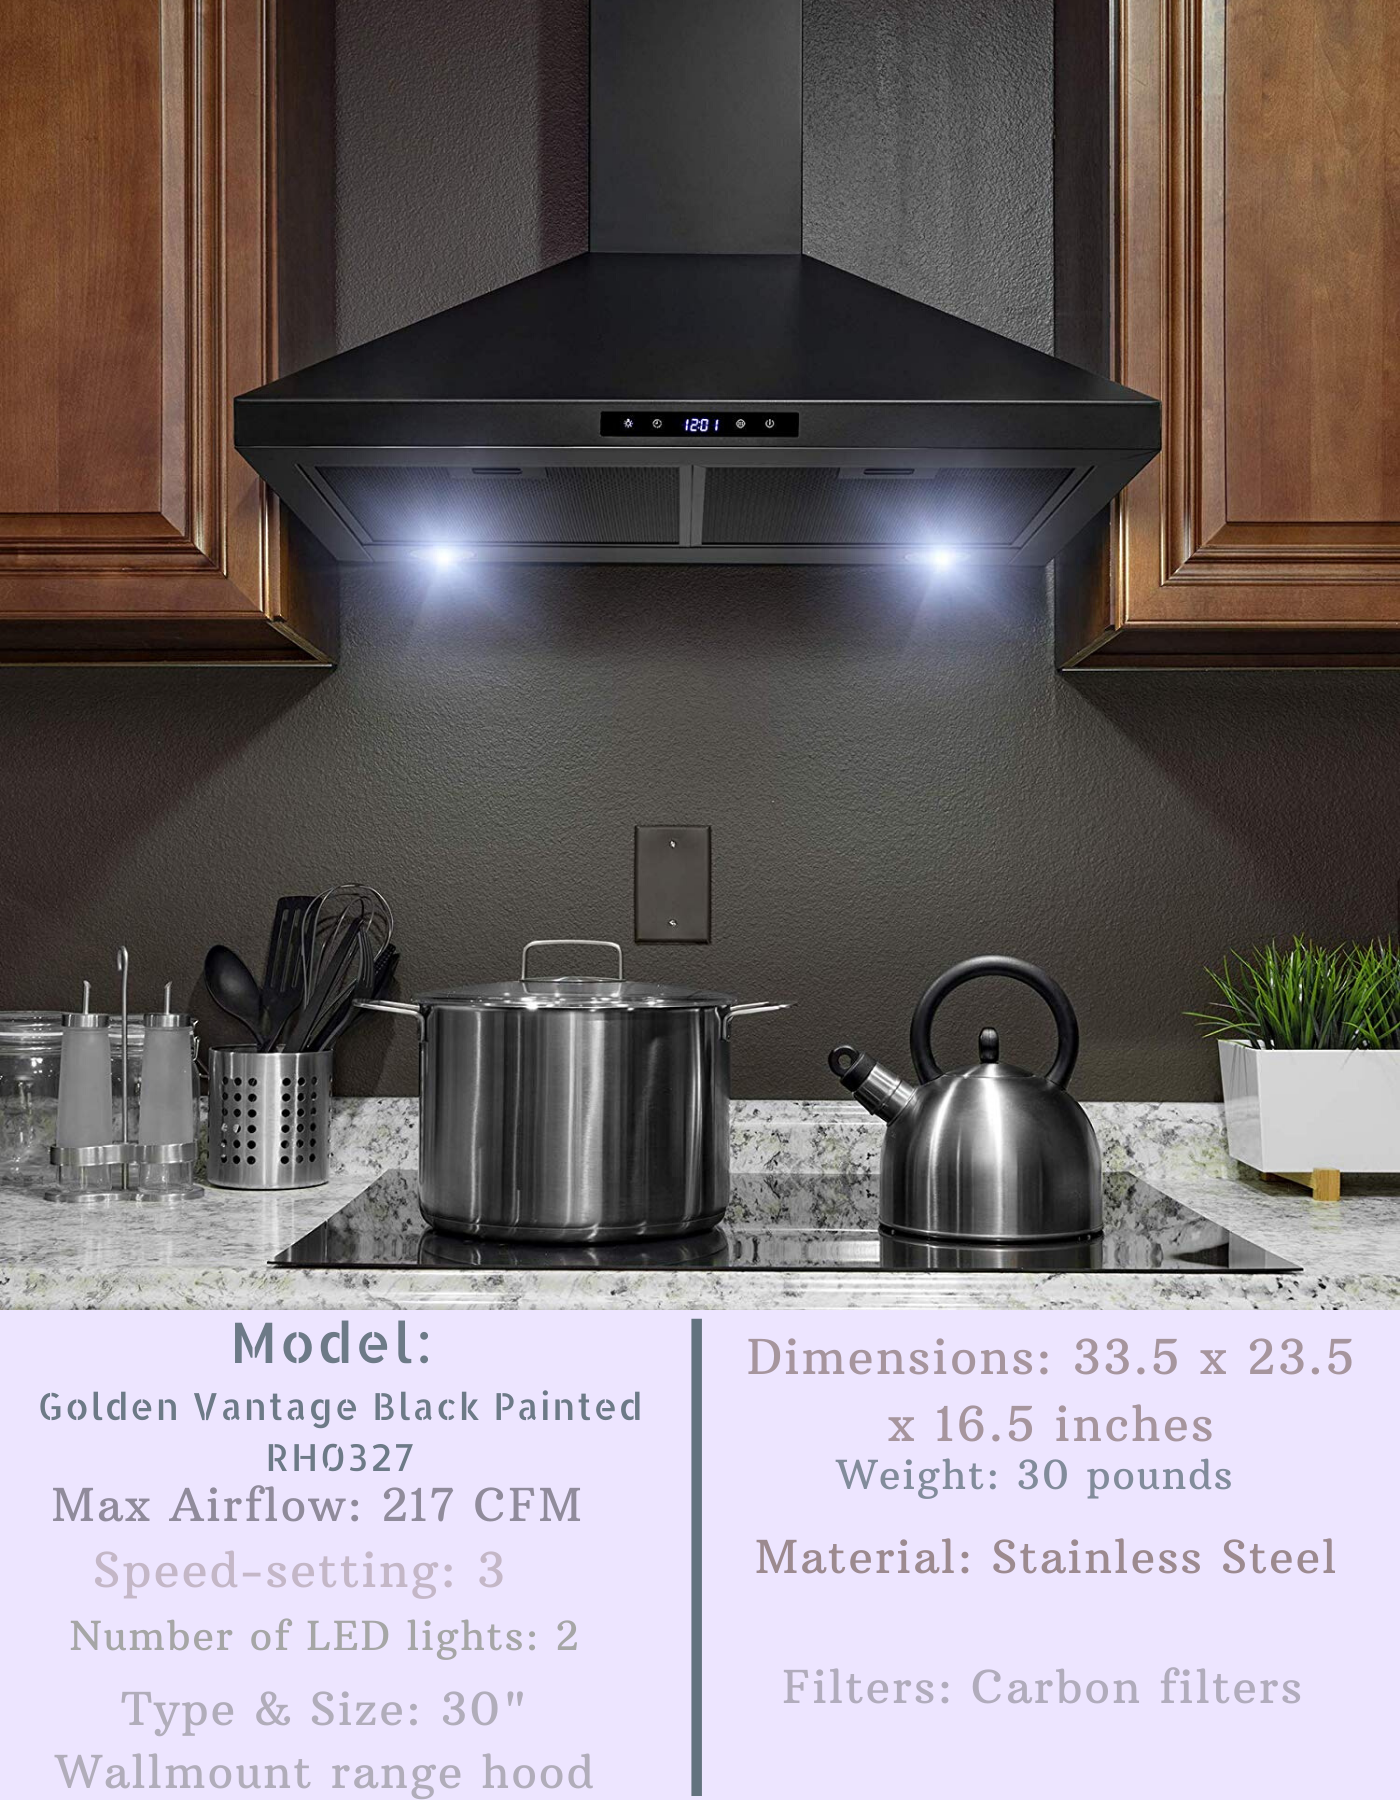 Golden Vantage Black Painted Range Hood Range Hood Cool Walls Wall Mount Range Hood